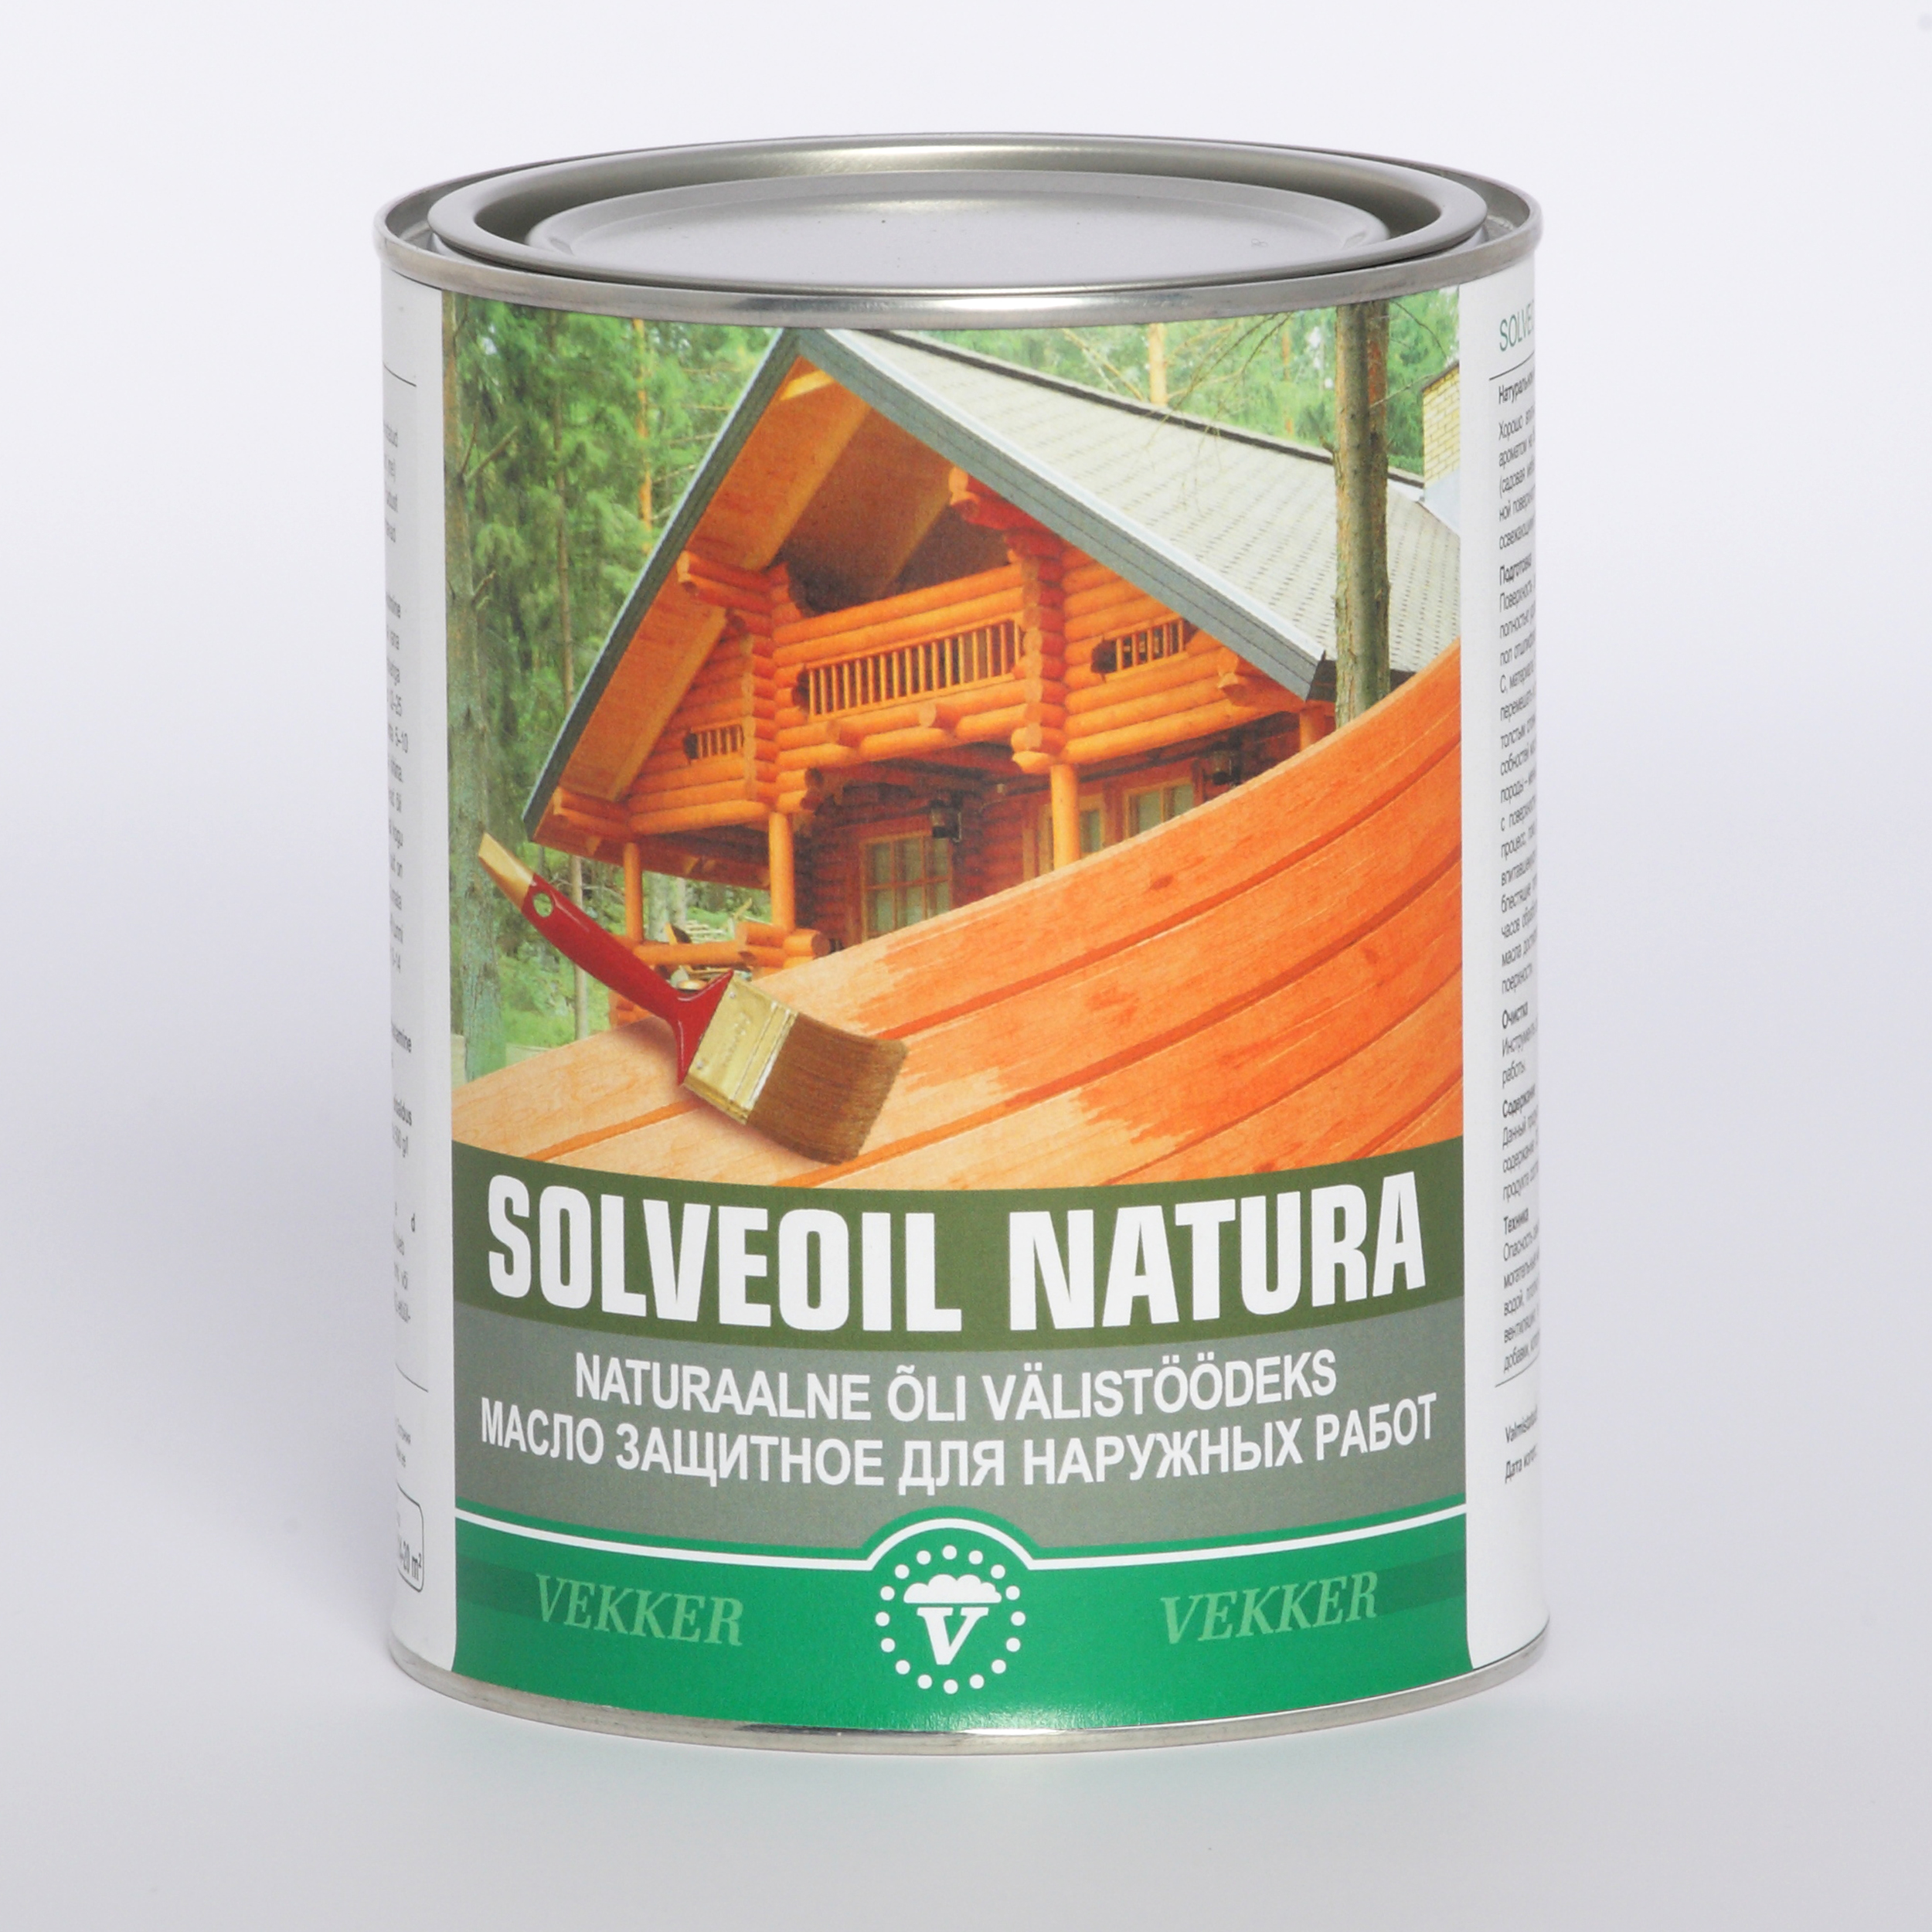 Solveoil Natura